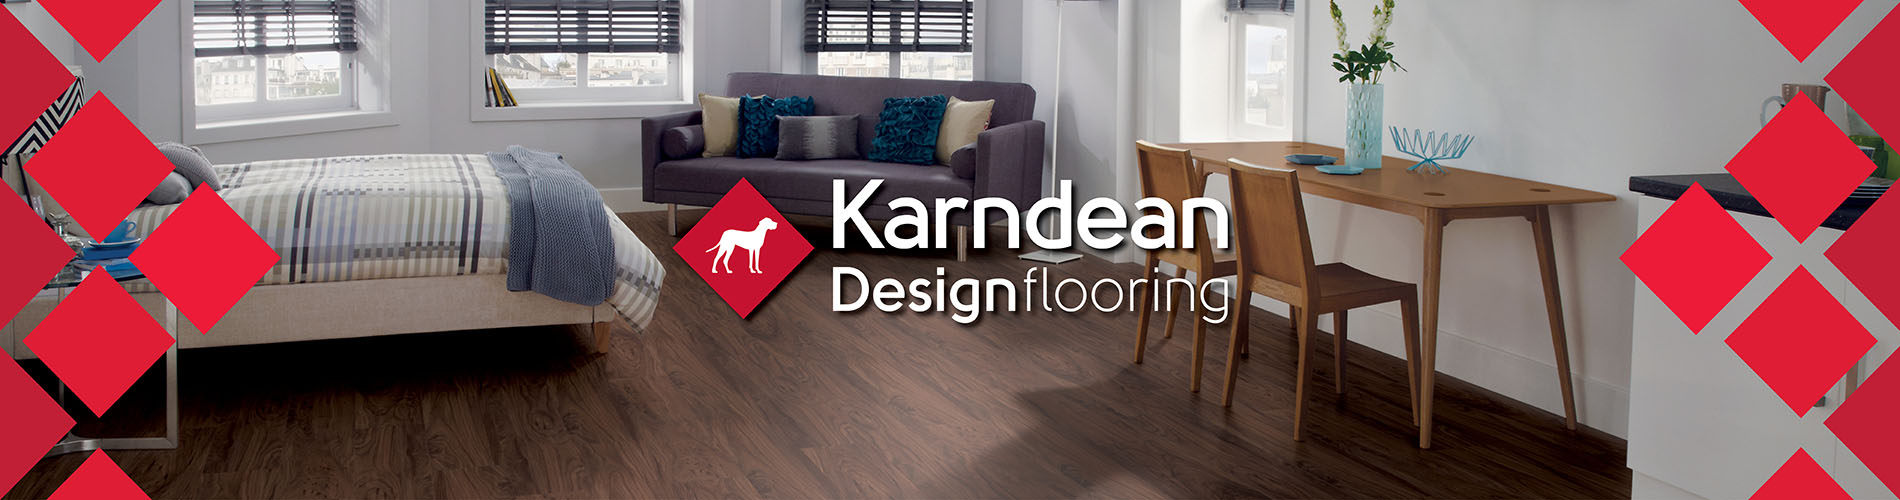 Save on Karndean Luxury Vinyl Tile Flooring at Abbey Carpet of Watertown, NY